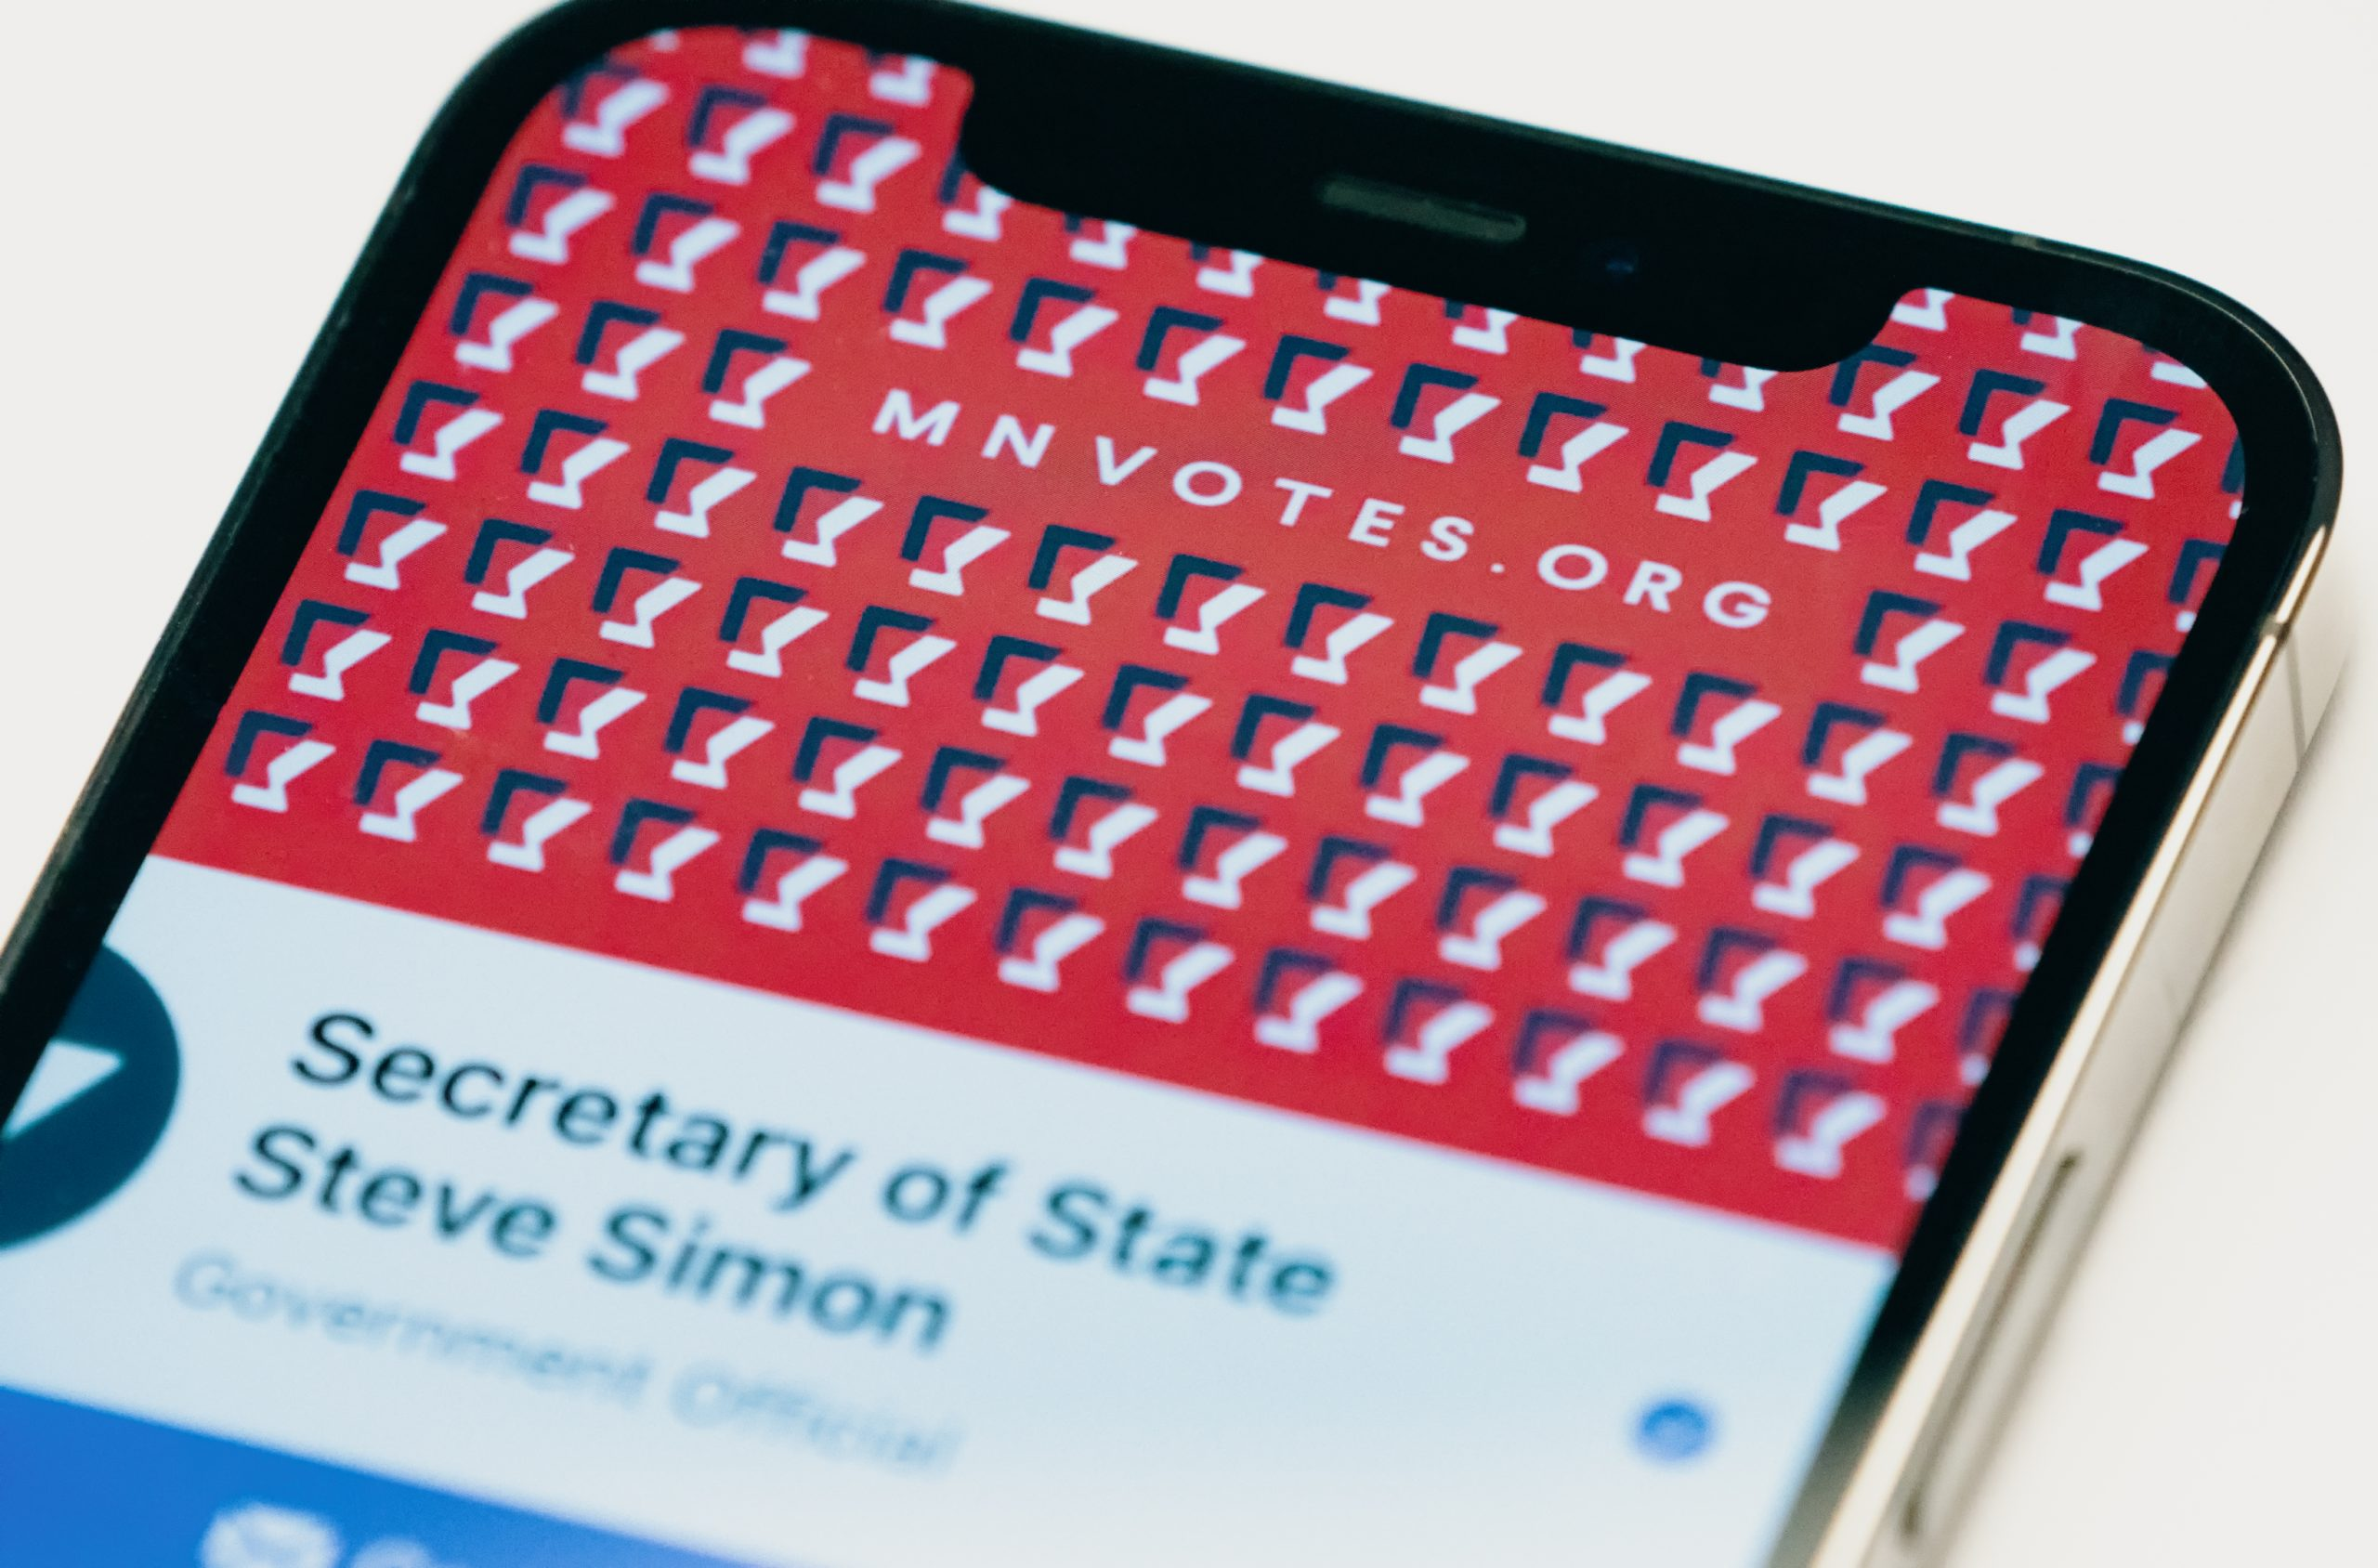 After last-minute court ruling, Facebook 'misinformation' policies block Minnesota election officials from alerting voters to stop mailing ballots